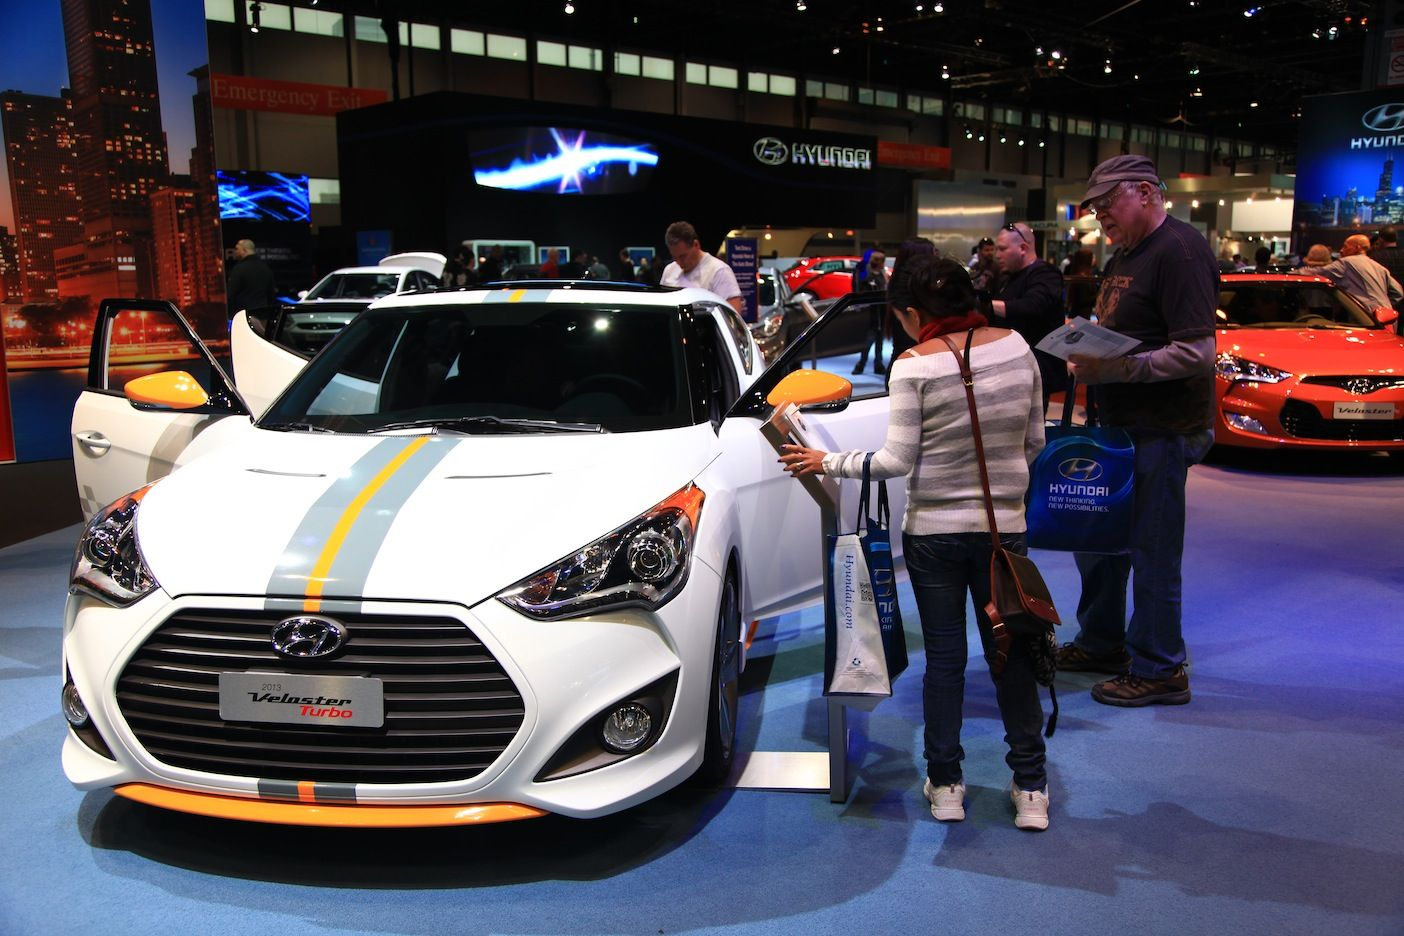 Pin By Sdm Cars On 2012 Chicago Auto Show Chicago Auto Show Hyundai Veloster Veloster Turbo